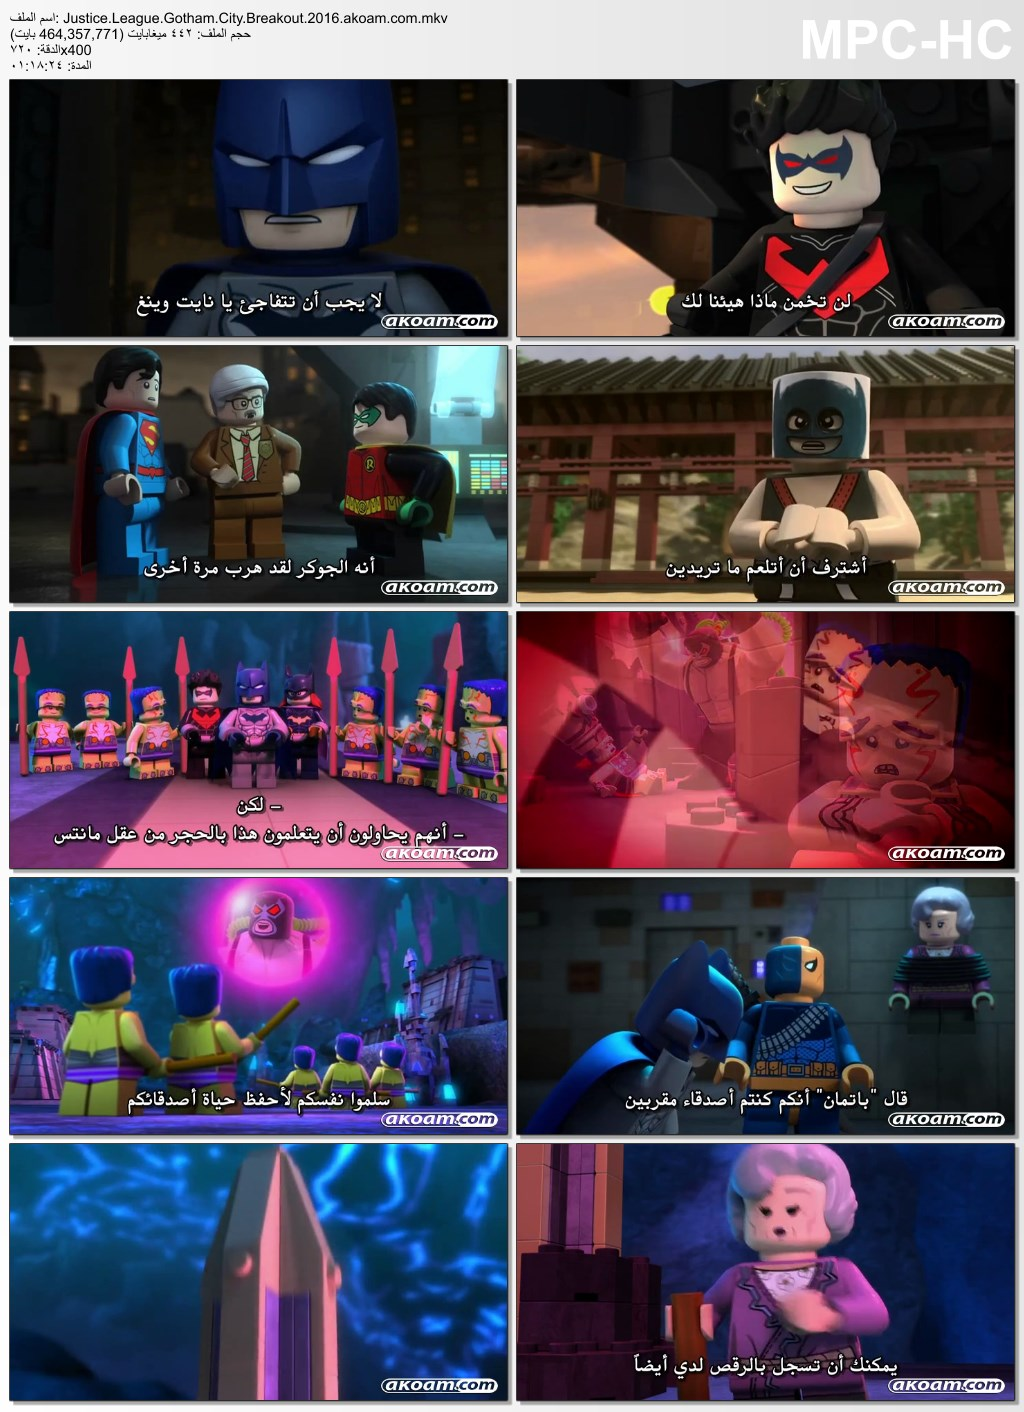 الانيميشن,Justice League Gotham City Breakout,Lego DC Comics Superheroes: Justice League - Gotham City Breakout